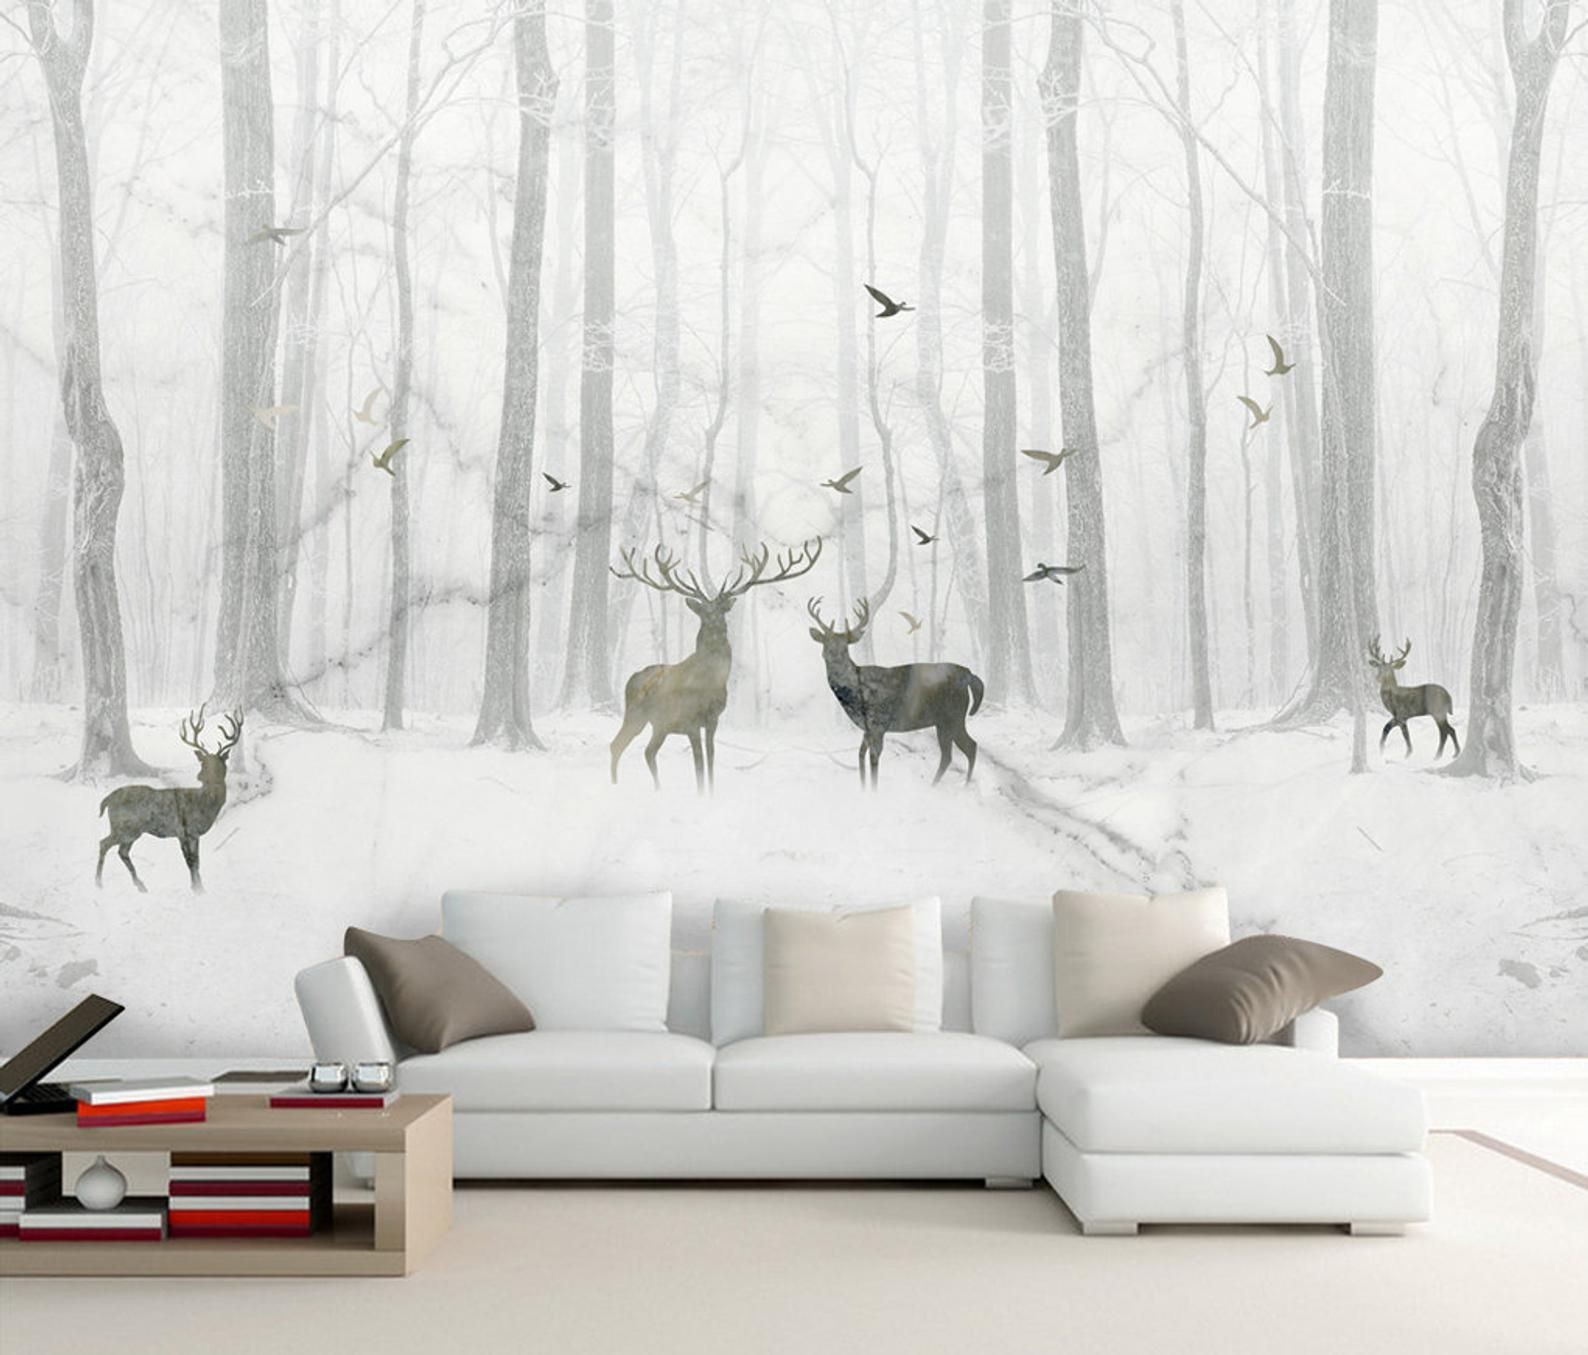 3D Black White Elk Forest Removable Wallpaper,Peel and